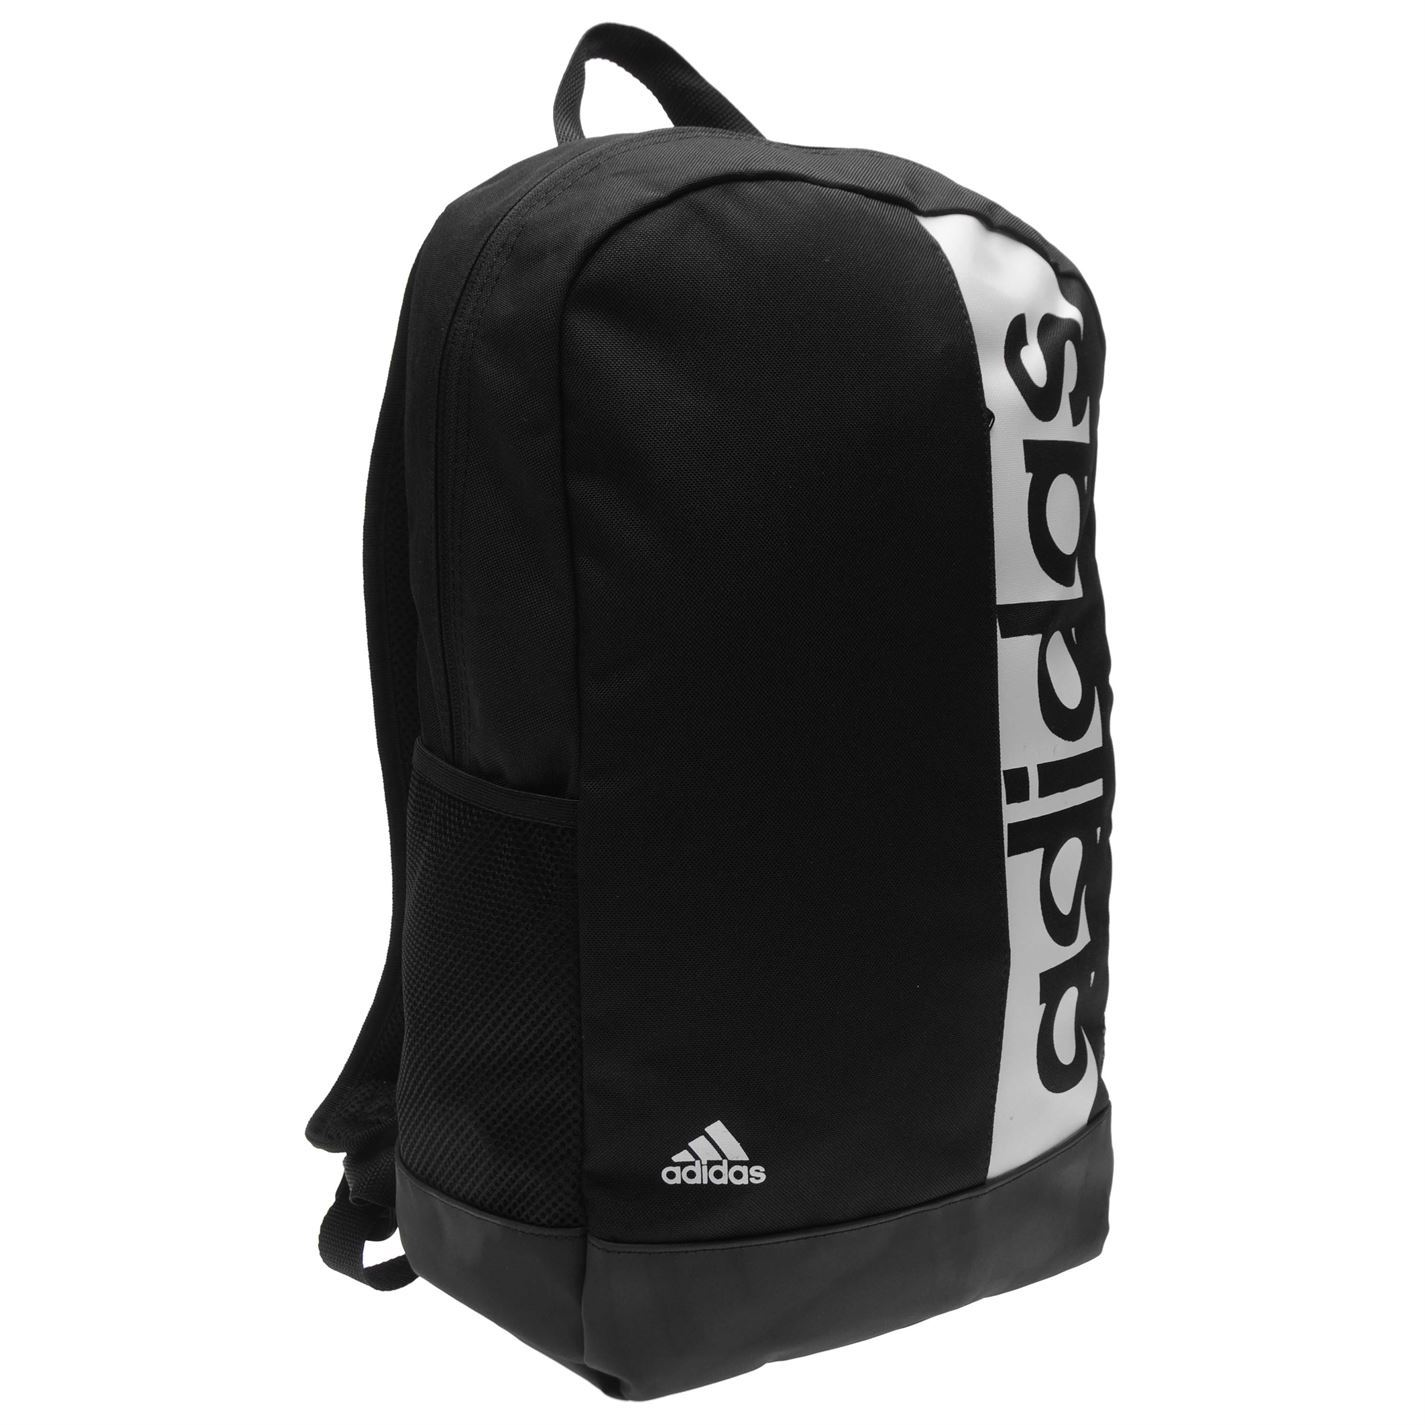 adidas Linear Backpack Black White Bag Holdall Gymbag Rucksack  a7949f27cd451